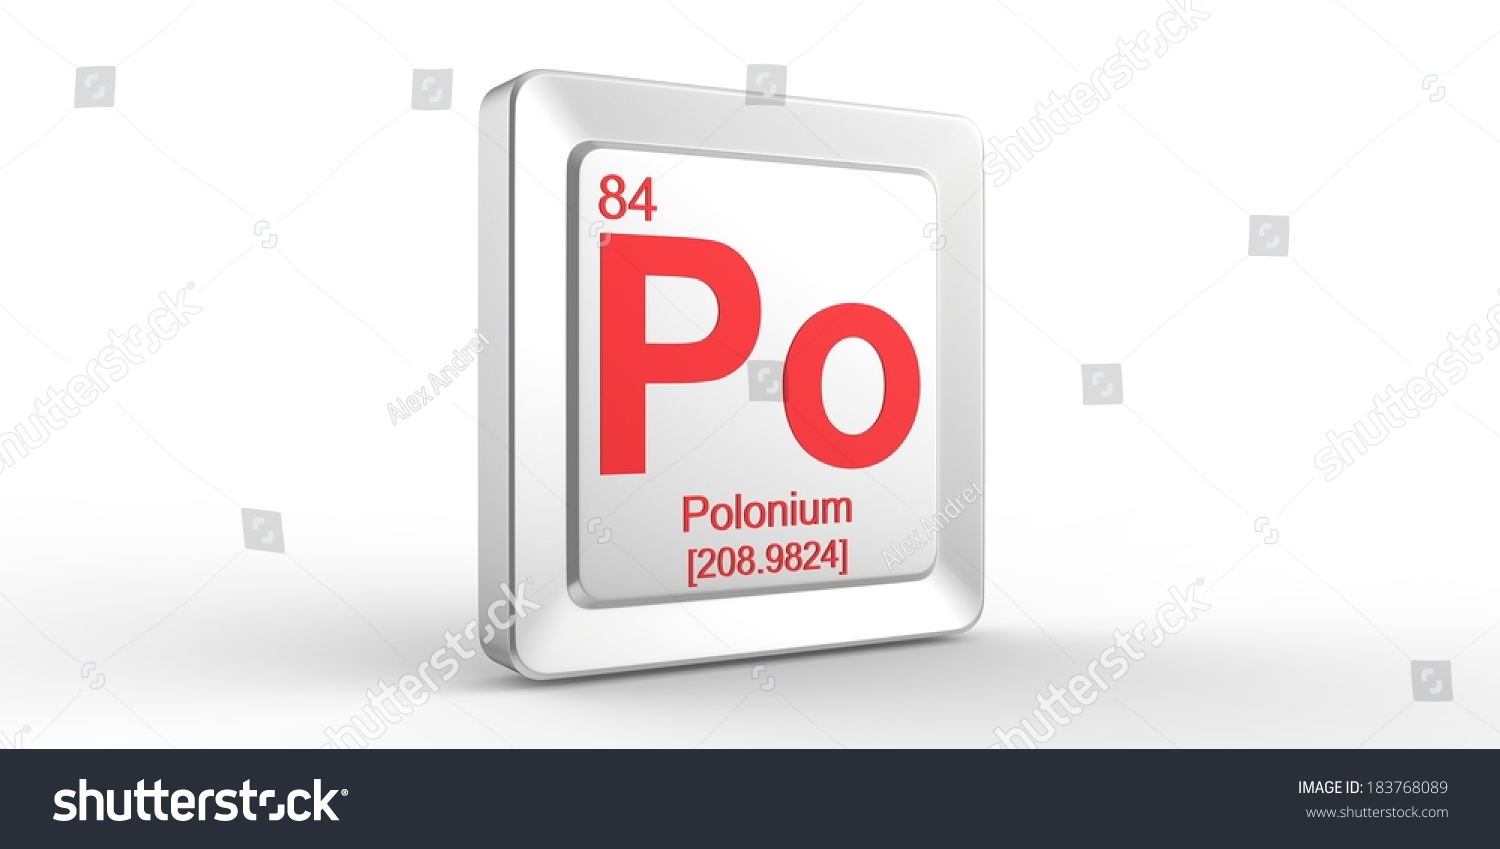 Po symbol 84 material polonium chemical stock illustration po symbol 84 material for polonium chemical element of the periodic table gamestrikefo Gallery